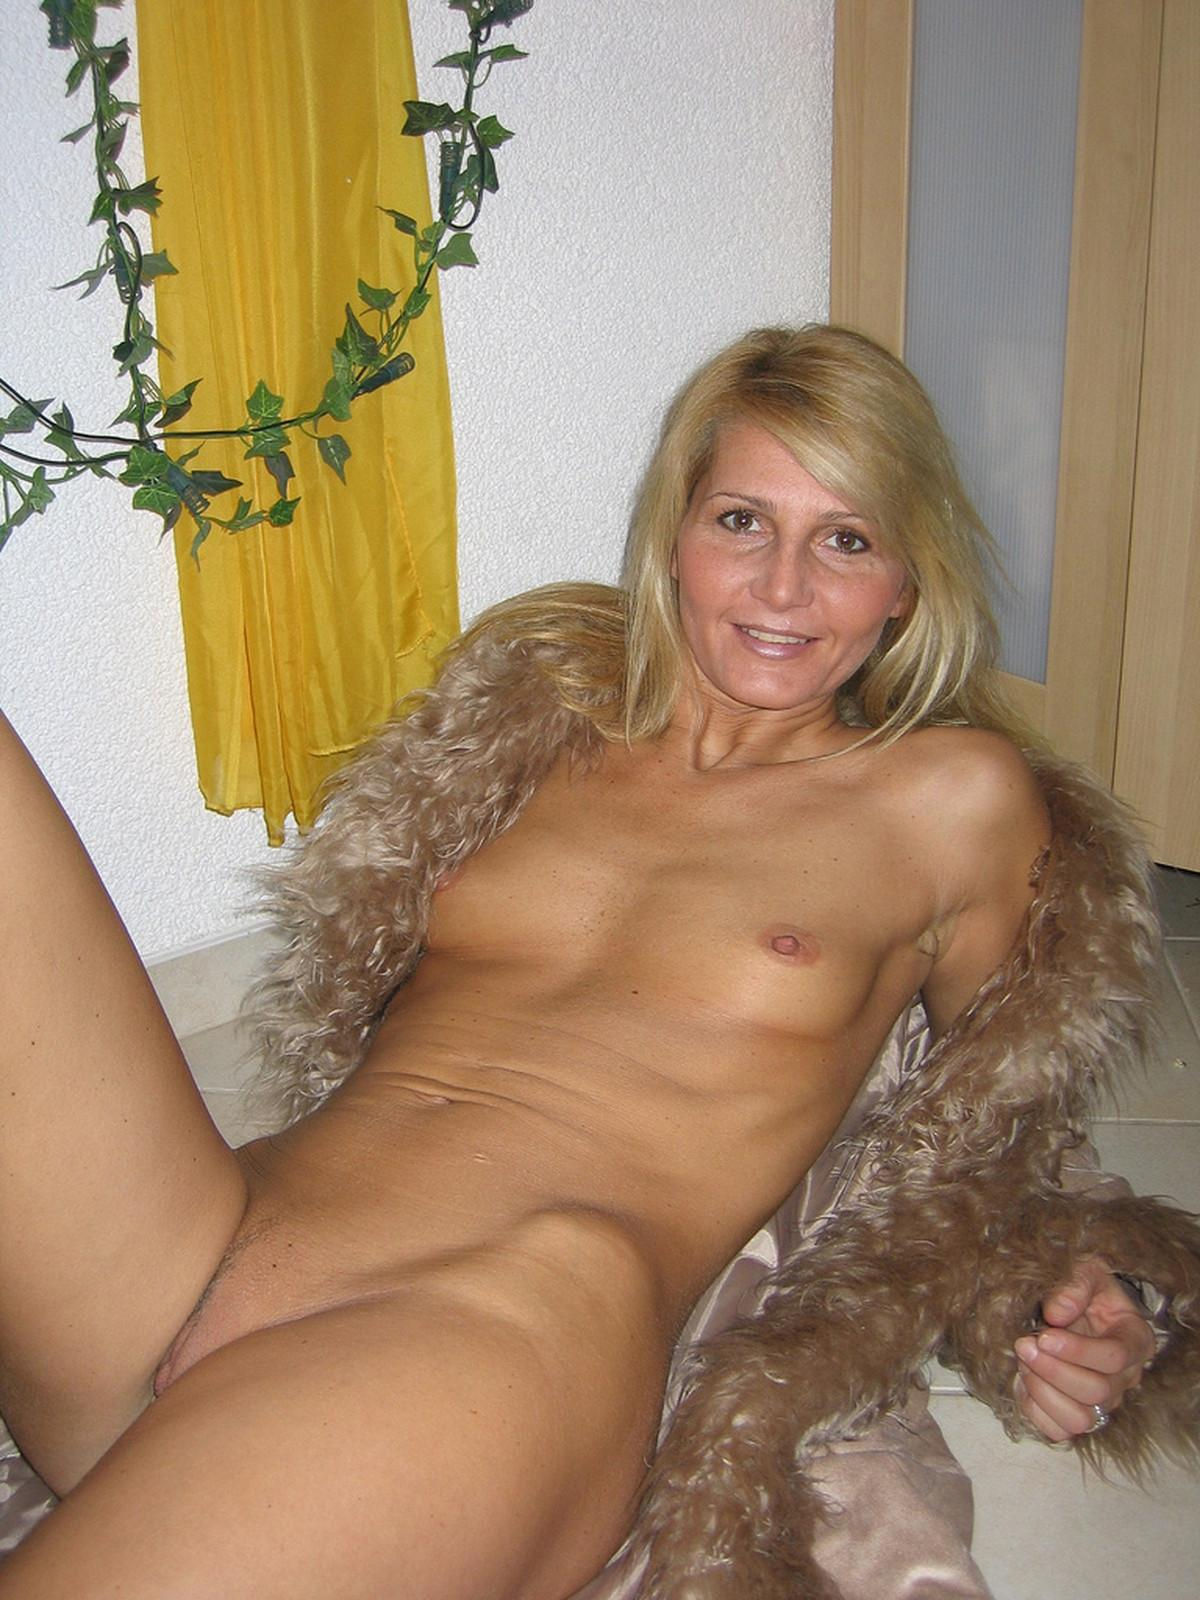 Ripe wife lets you see her perfect body when she is lying on the floor